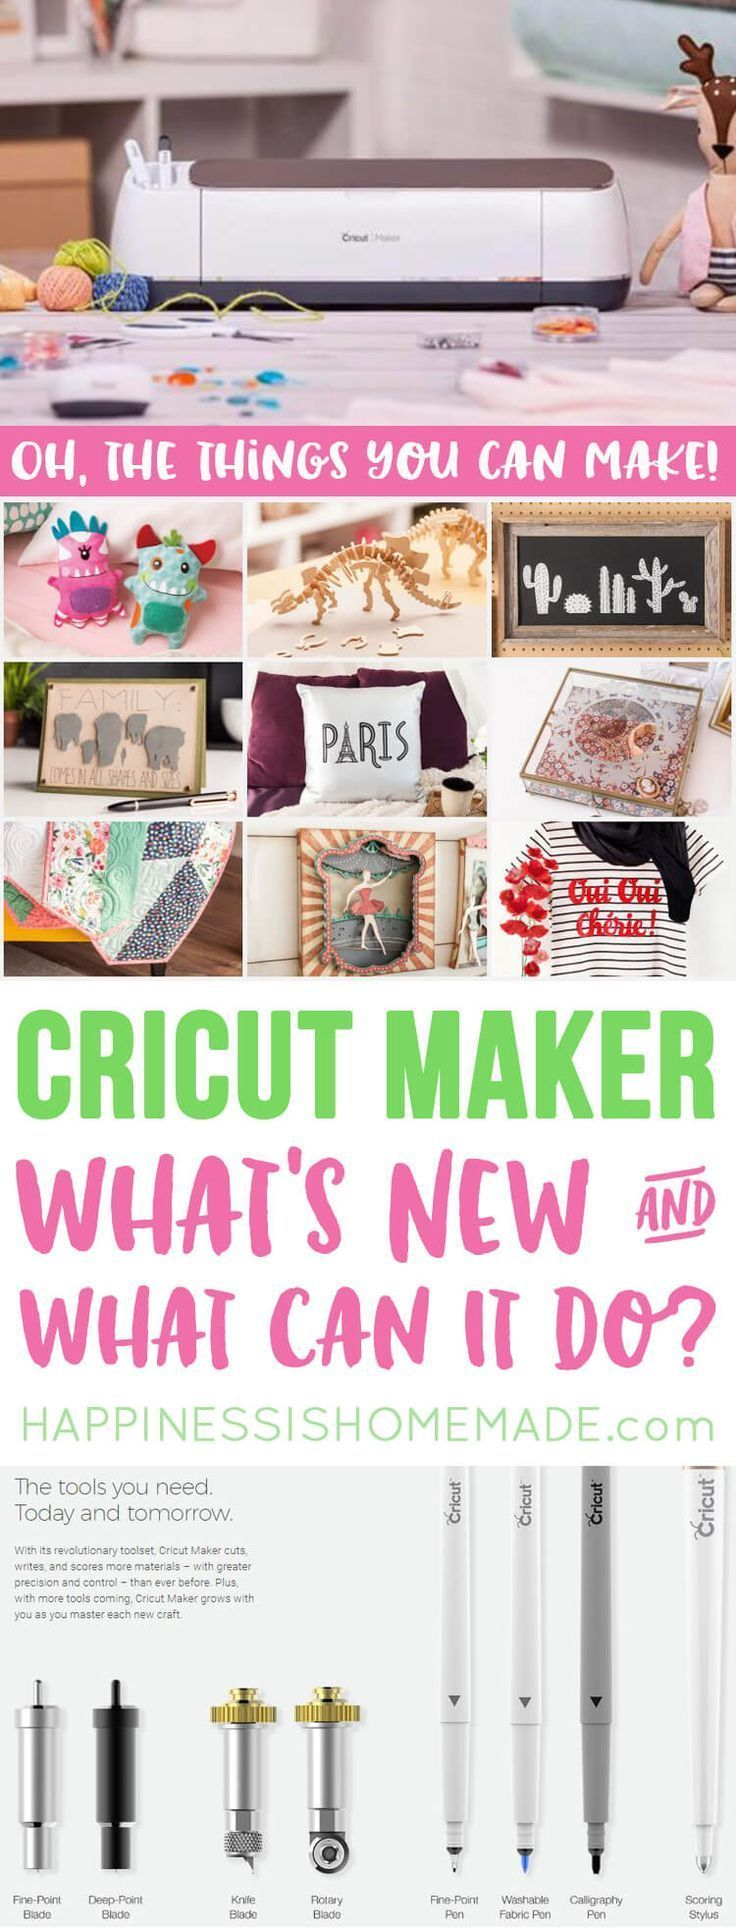 The Cricut Maker is perfect for all of your crafting needs! Quickly & precisely cut everything from thin tissue paper and fabric to leather and balsa wood! #ad @officialcricut #CricutMaker #CricutMade #Cricut